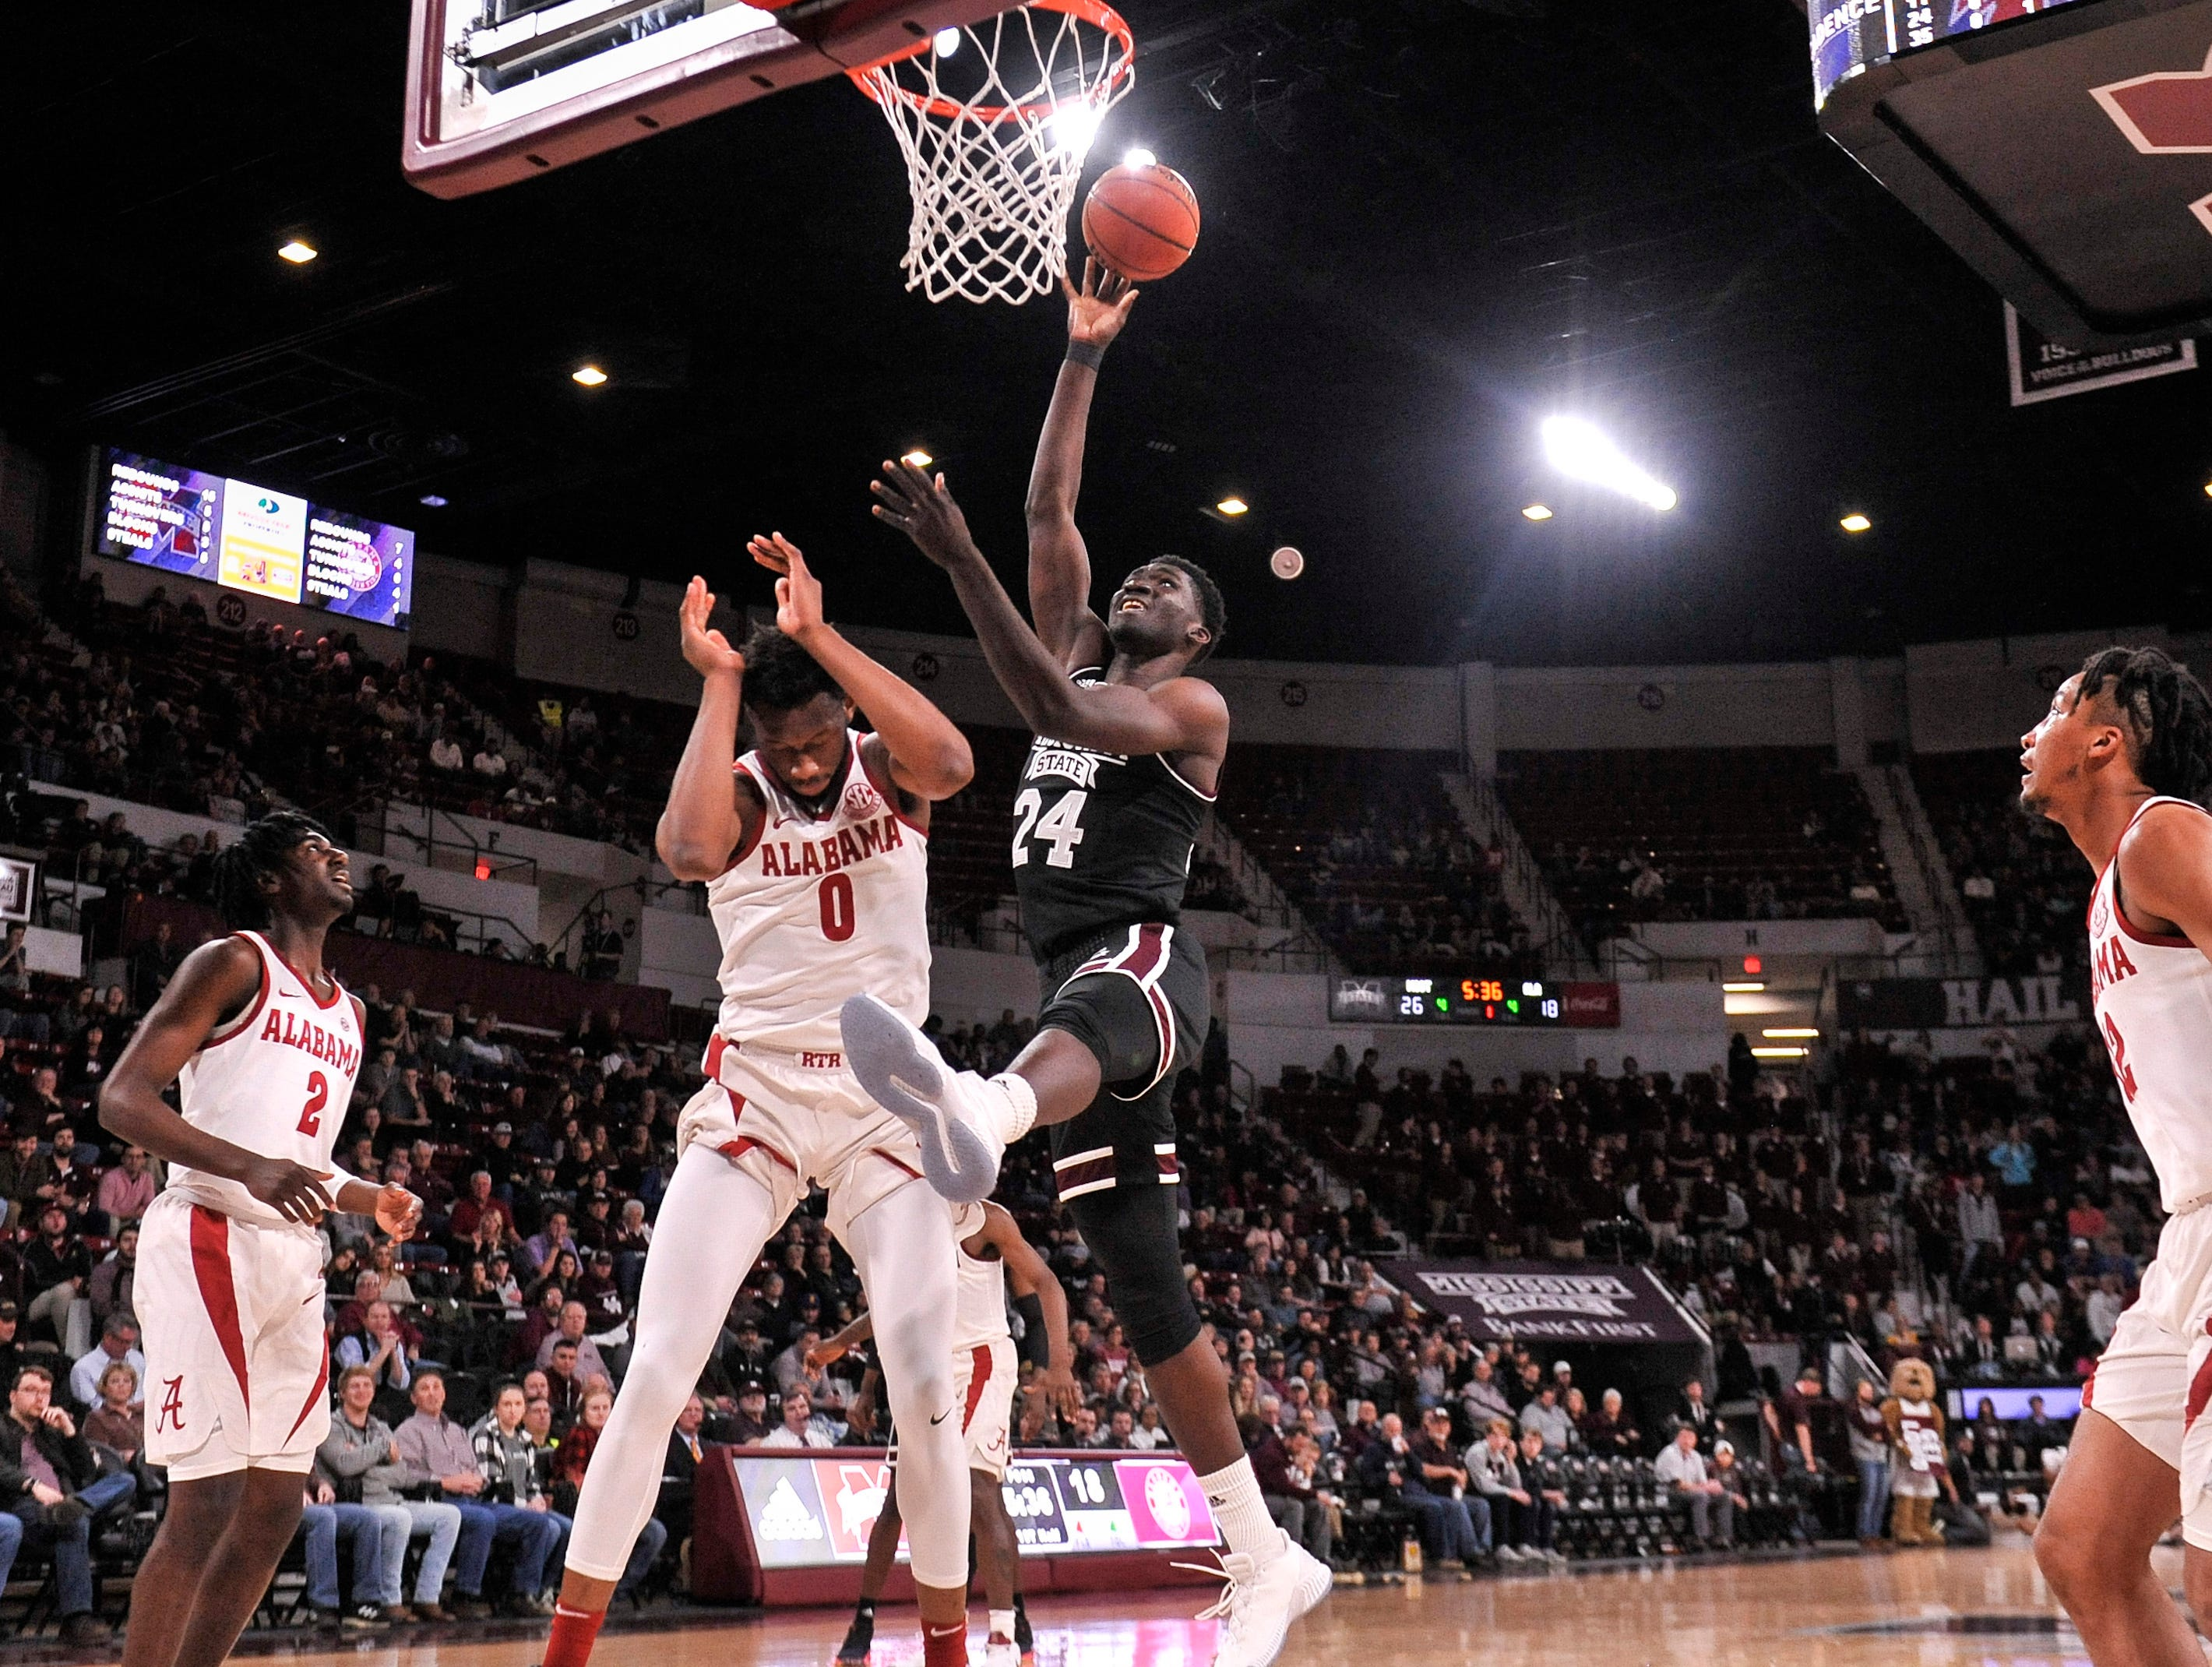 Feb 12, 2019; Starkville, MS, USA; Mississippi State Bulldogs forward Abdul Ado (24) shoots the ball past Alabama Crimson Tide forward Donta Hall (0) during the first half at Humphrey Coliseum. Mandatory Credit: Justin Ford-USA TODAY Sports